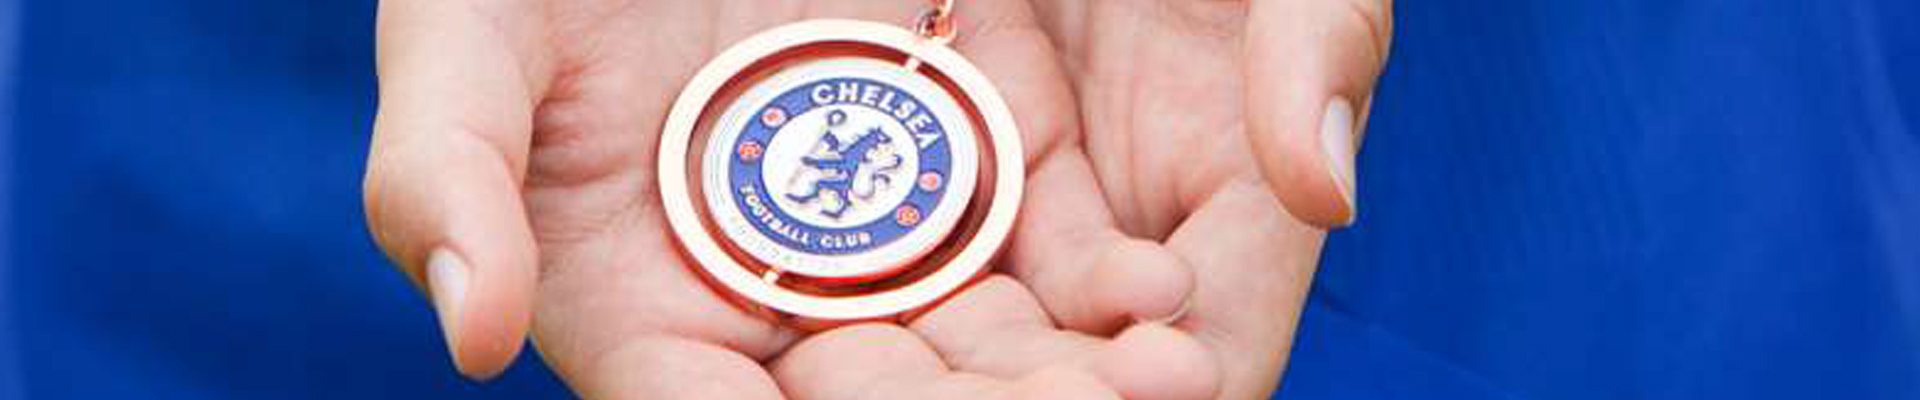 Londres, Futbol Chelsea FC Foundation